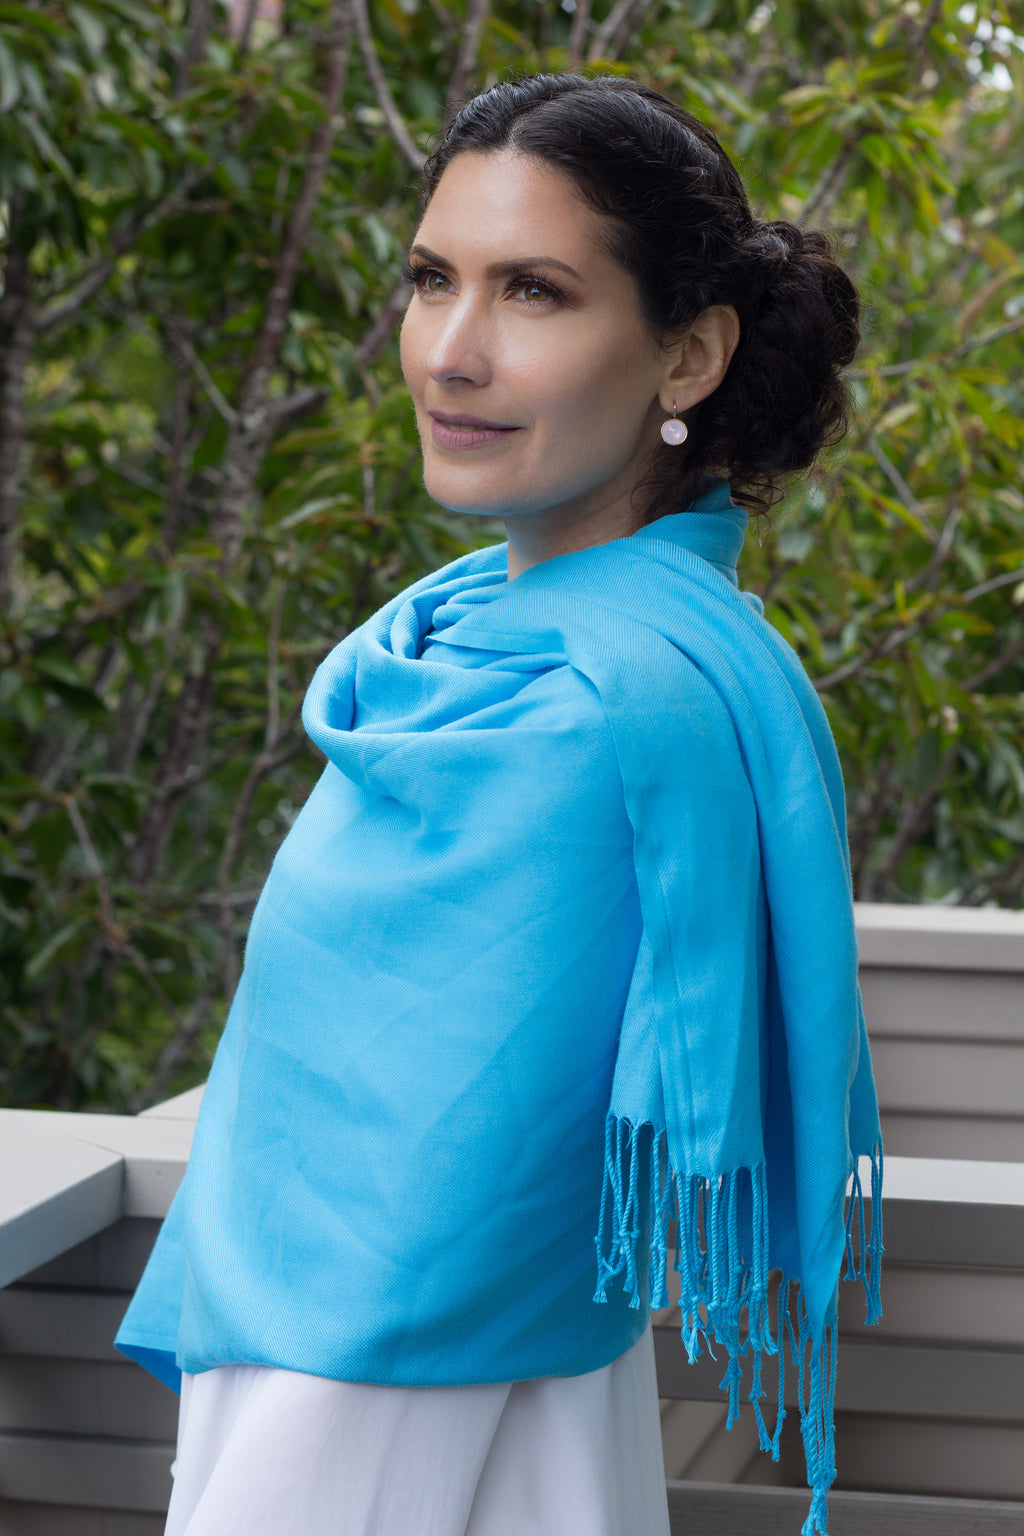 Scarf - Pashmina - Solid Colored Light Blue - Beksan Designs